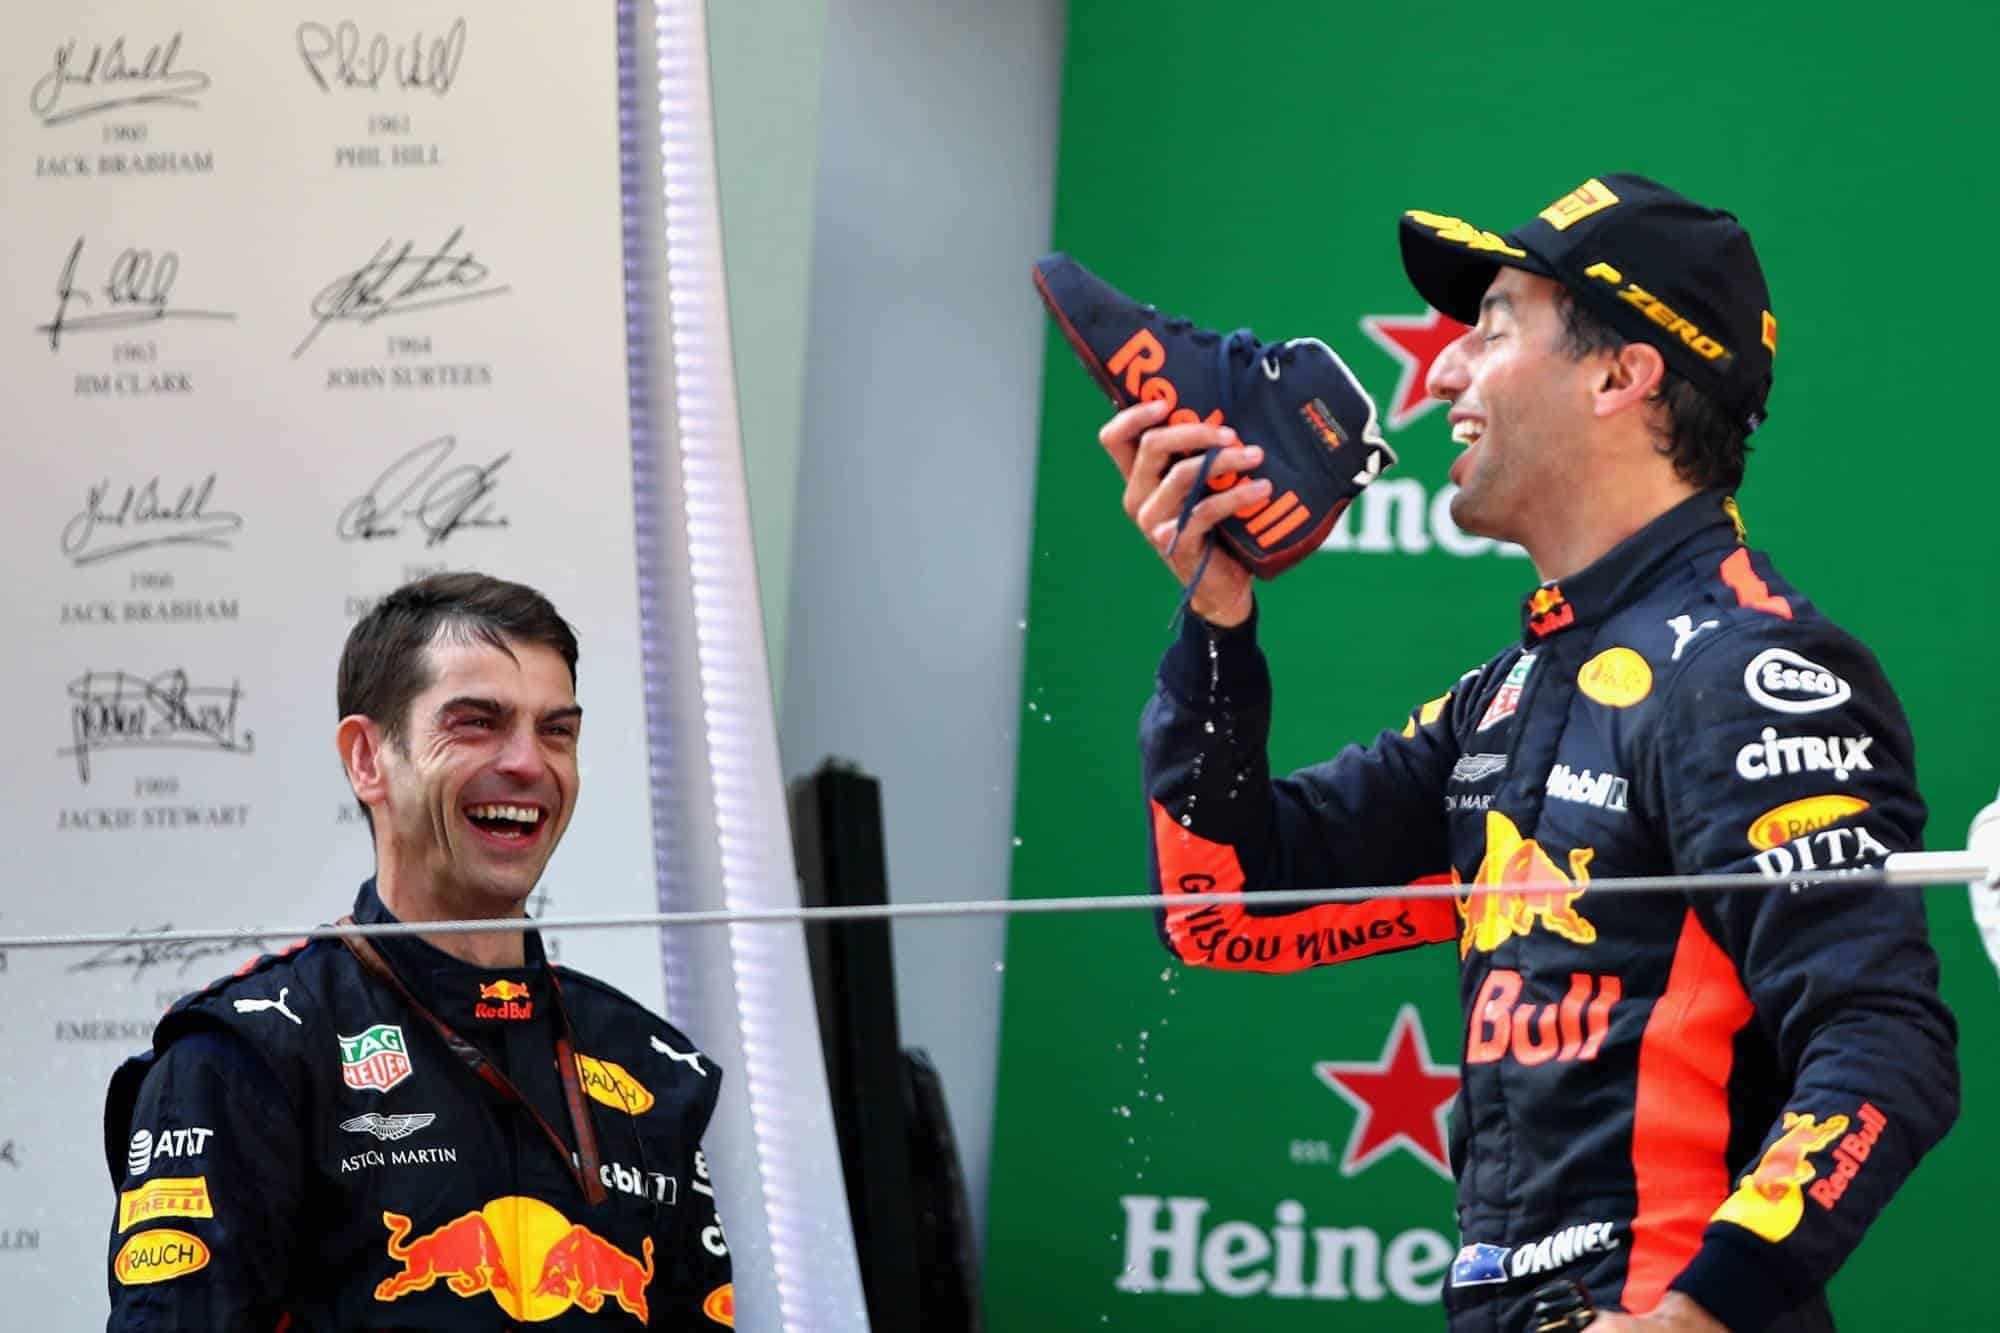 Daniel Ricciardo Red Bull RB14 Chinese GP F1 2018 podium Photo Red Bull